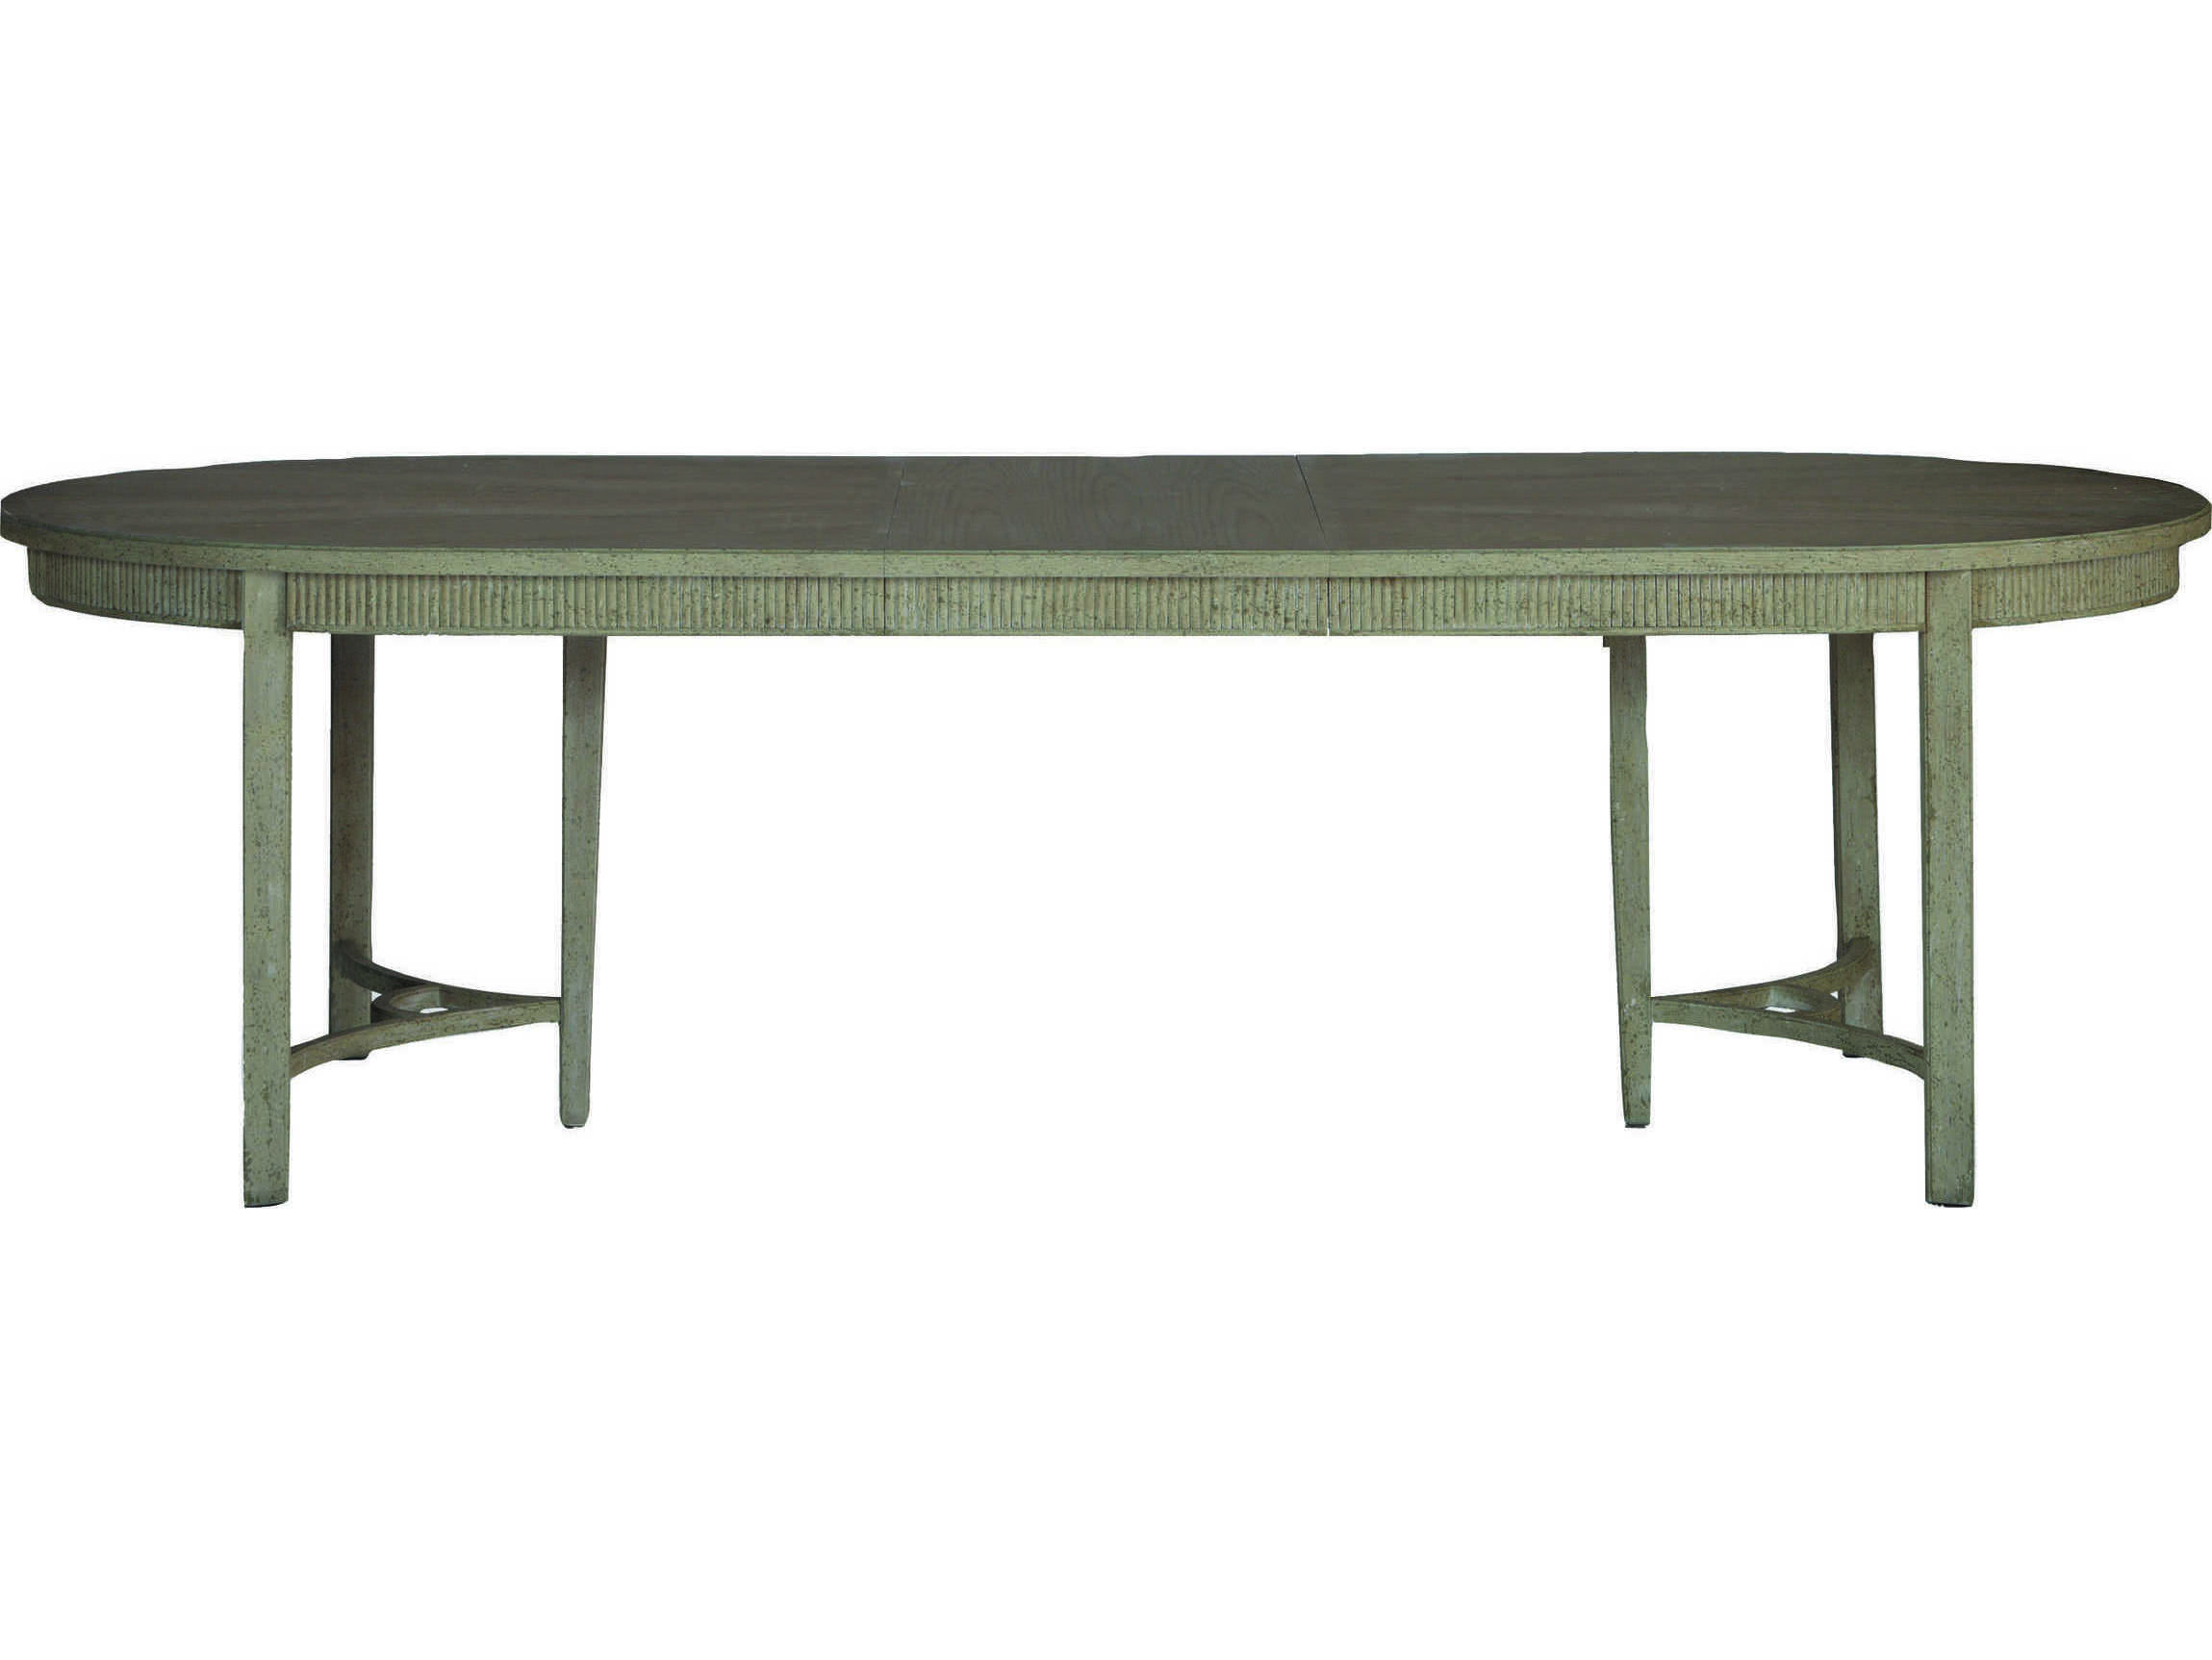 Gabby Whitlock Natural Cerused Oak Distressed Cream 106 W X 44 D Oval Dining Table